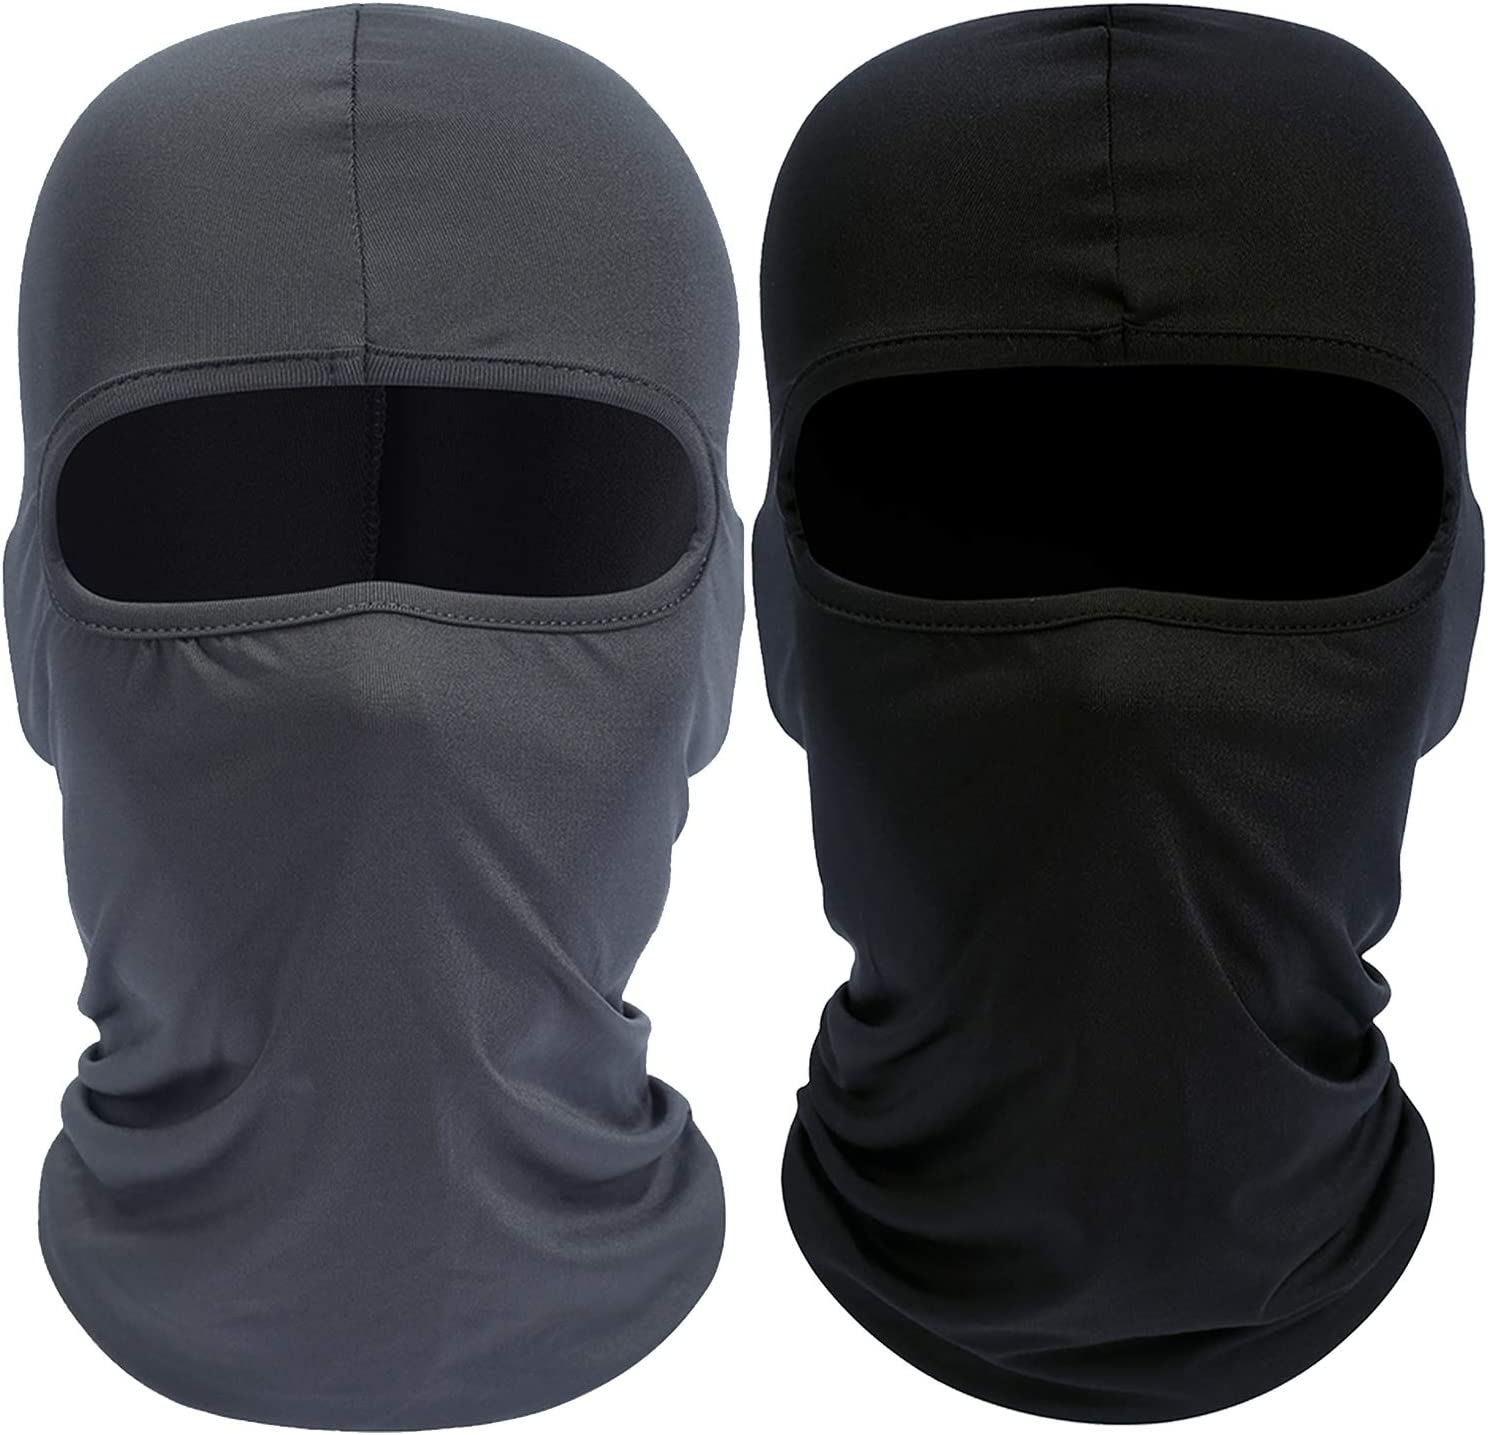 Your Choice Balaclava Face Mask Cold Weather Winter Mask,Set of 2 Black and Grey